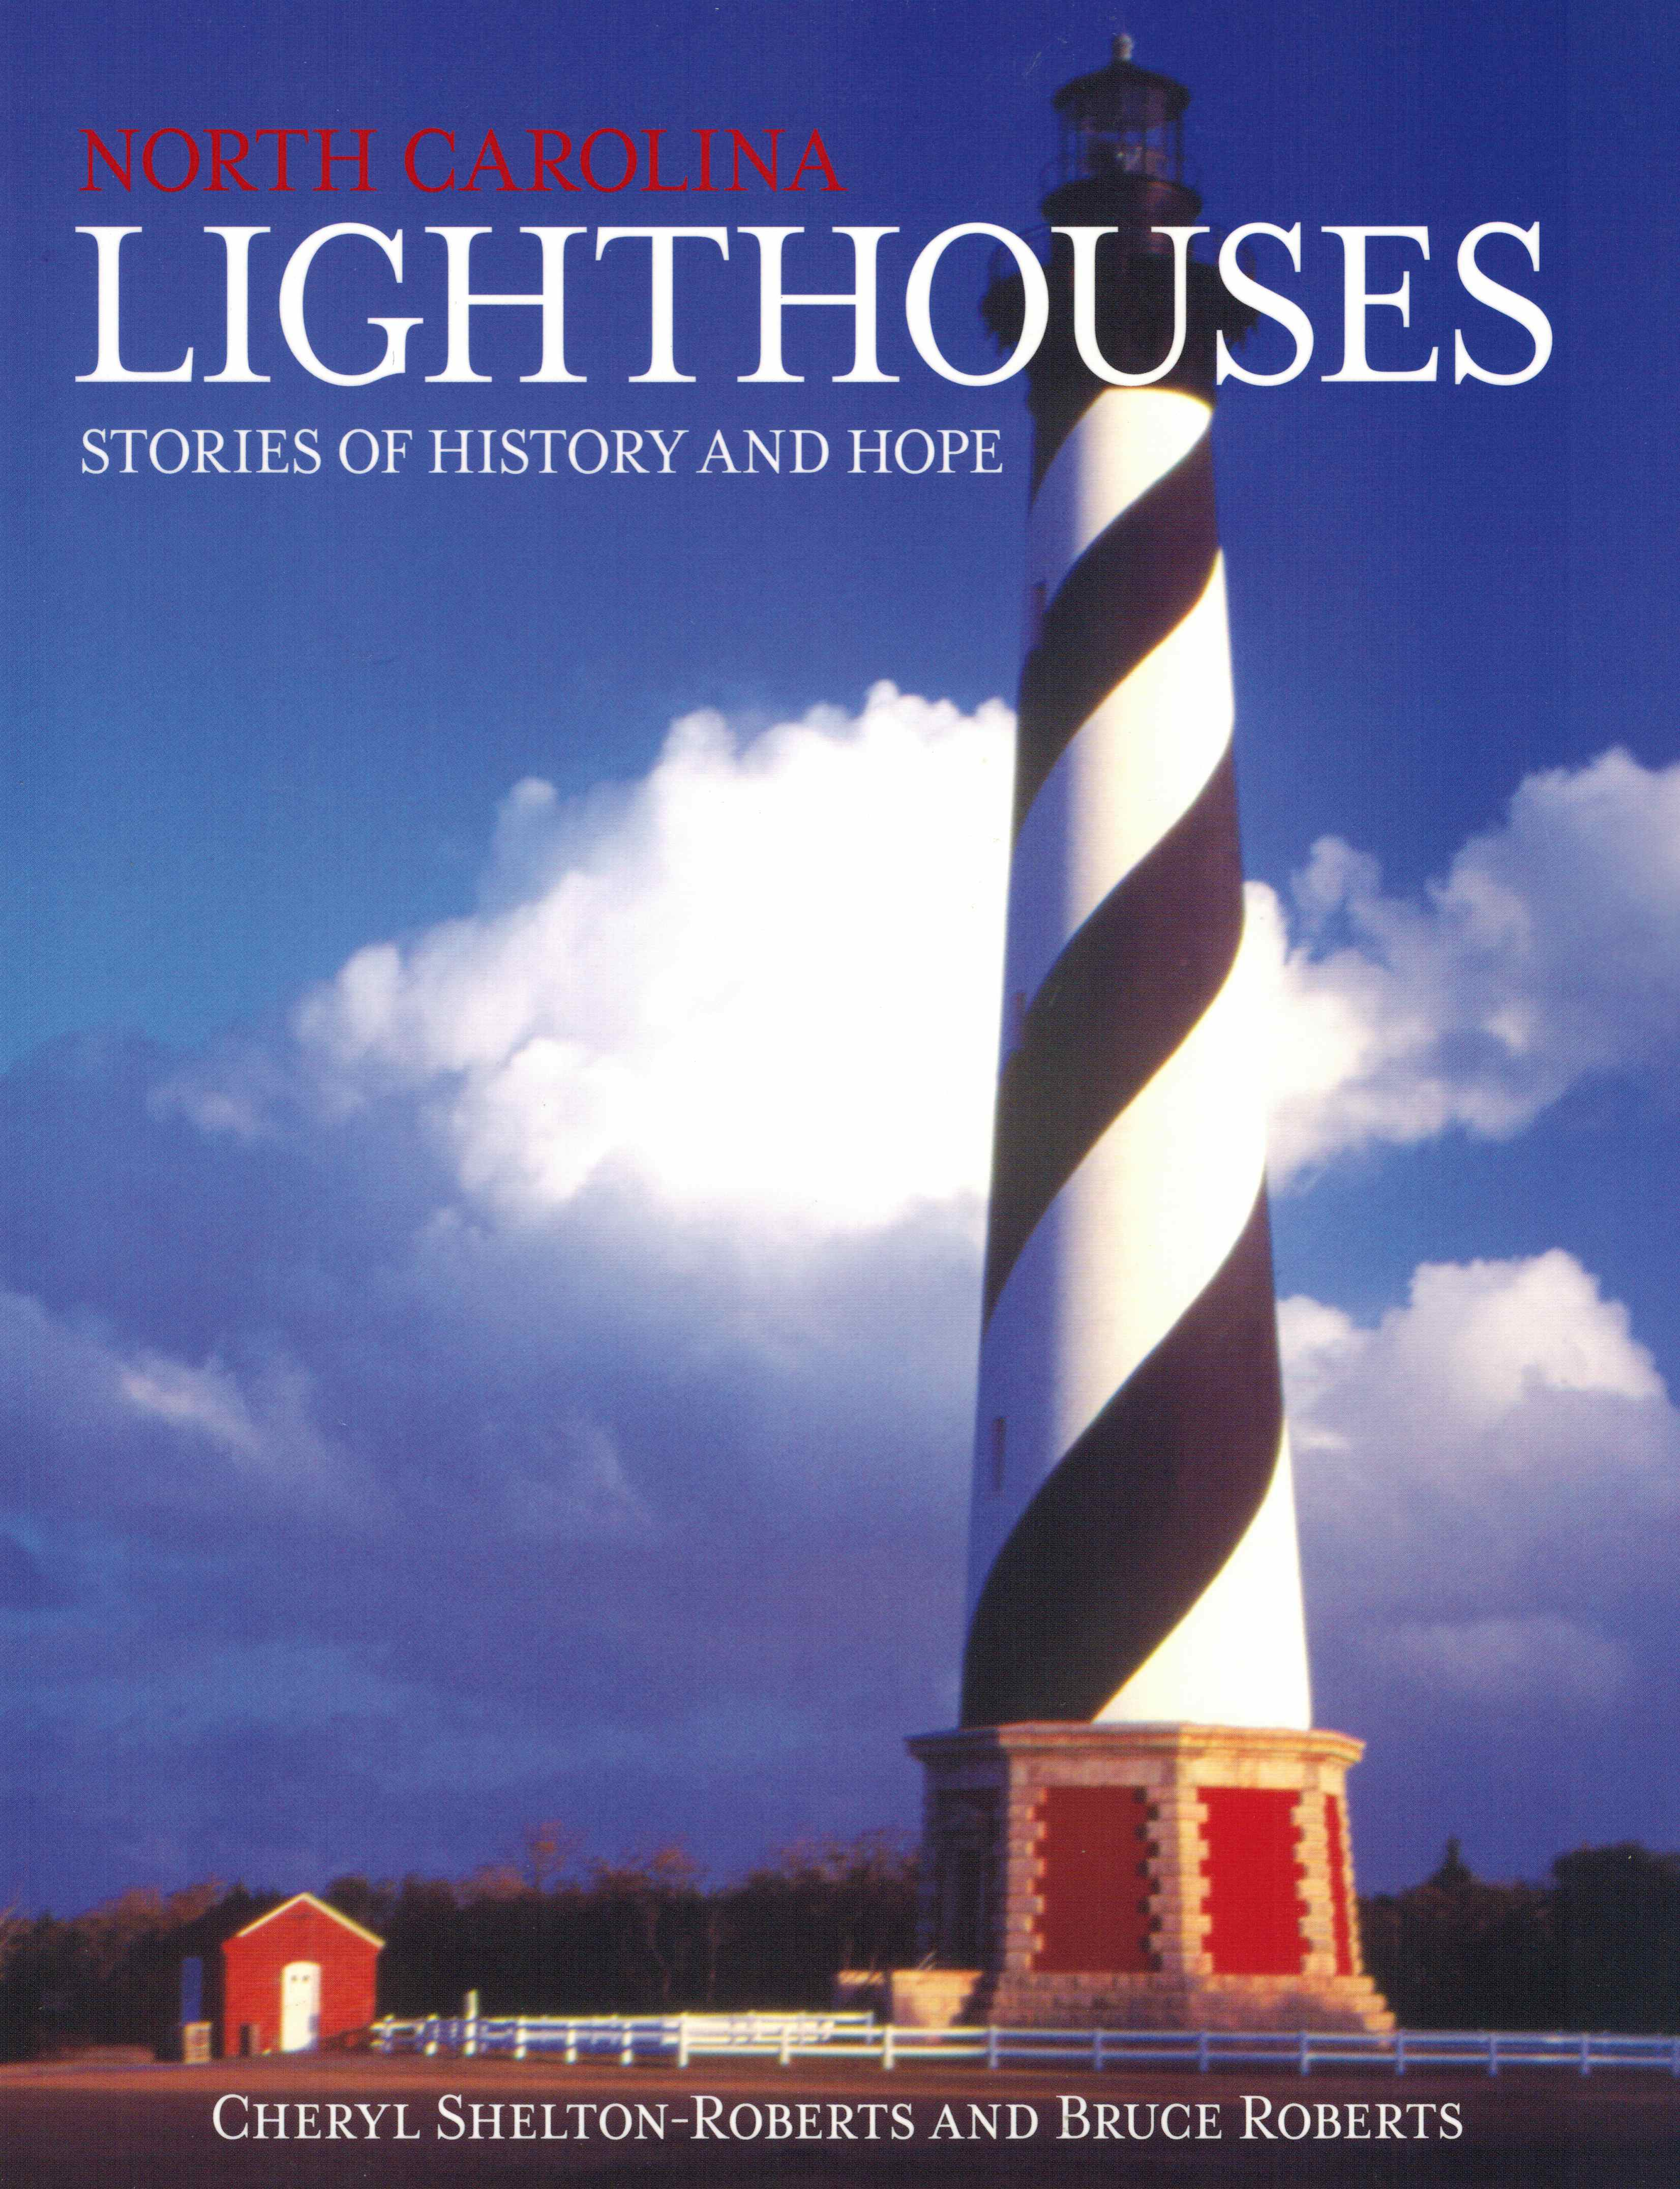 North Carolina Lighthouses Stories of History and Hope